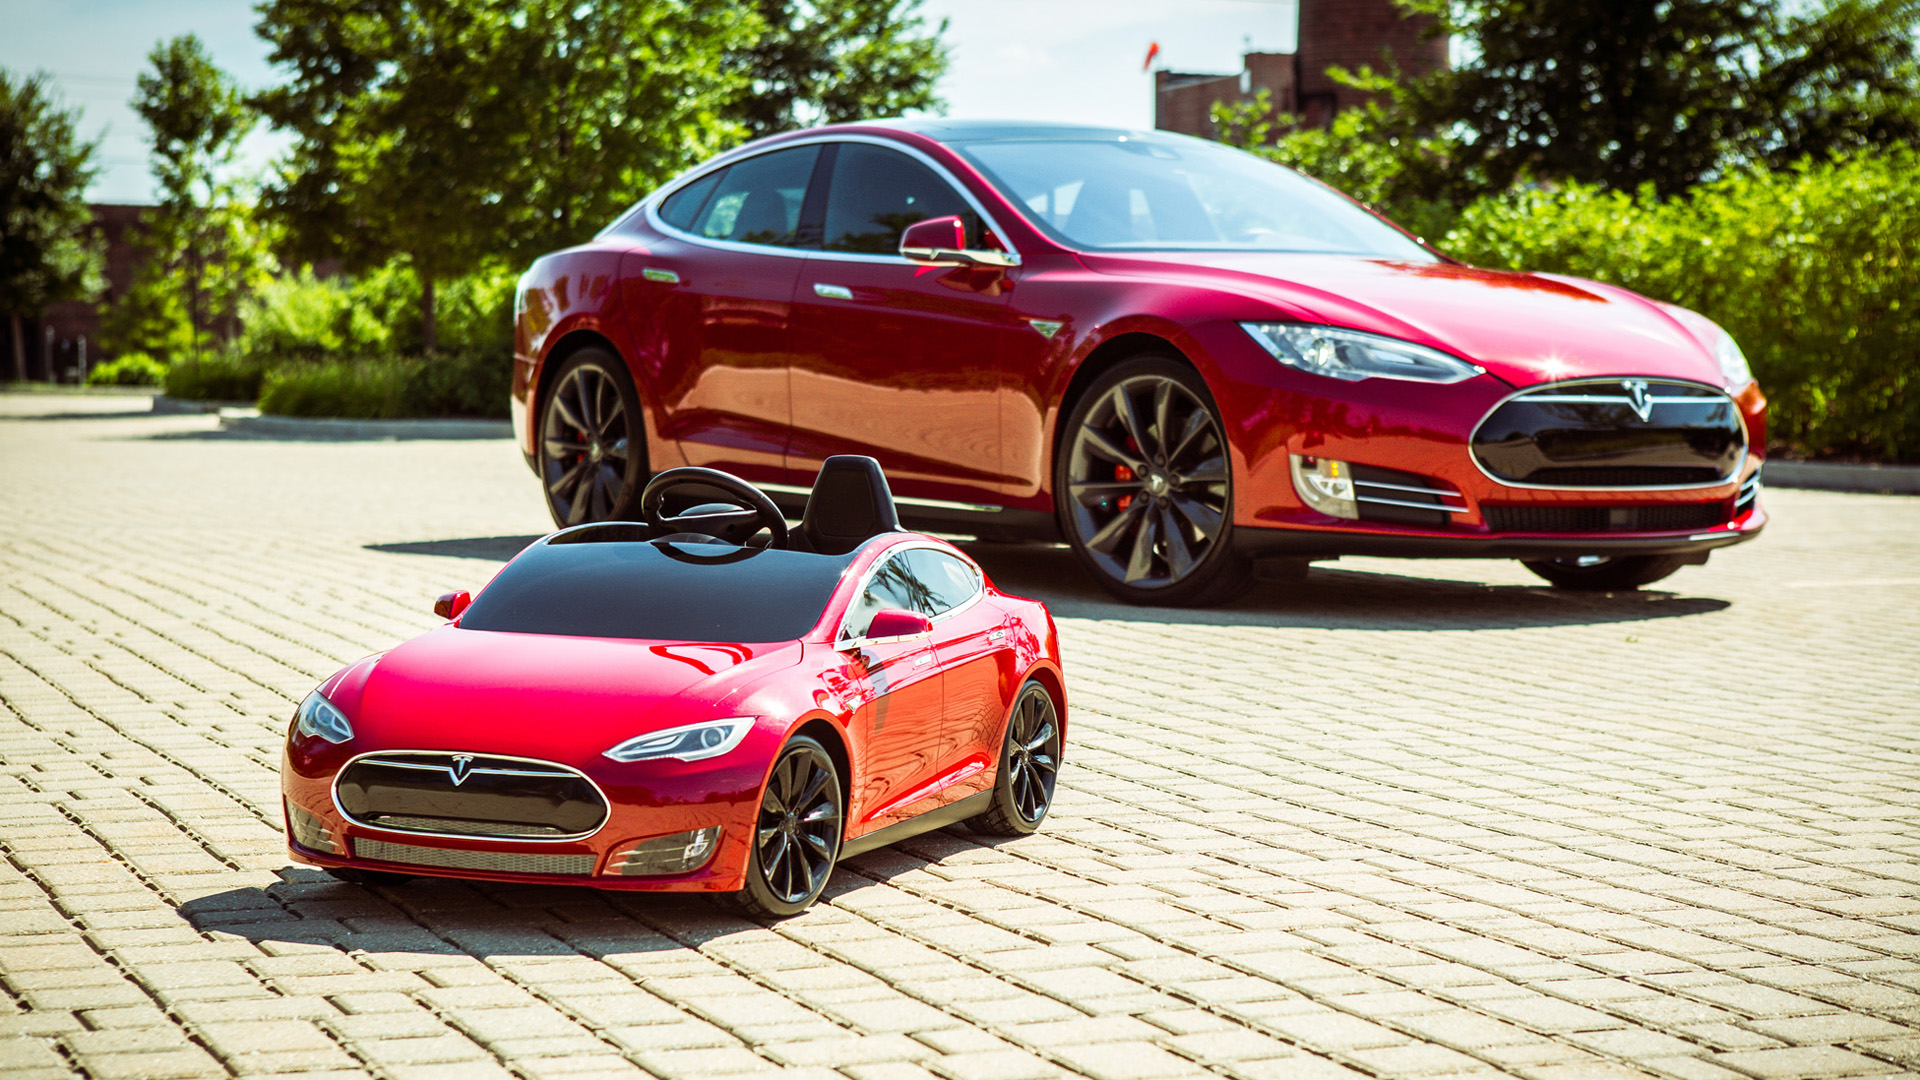 Video: Scaling down with the Tesla Model S for Kids